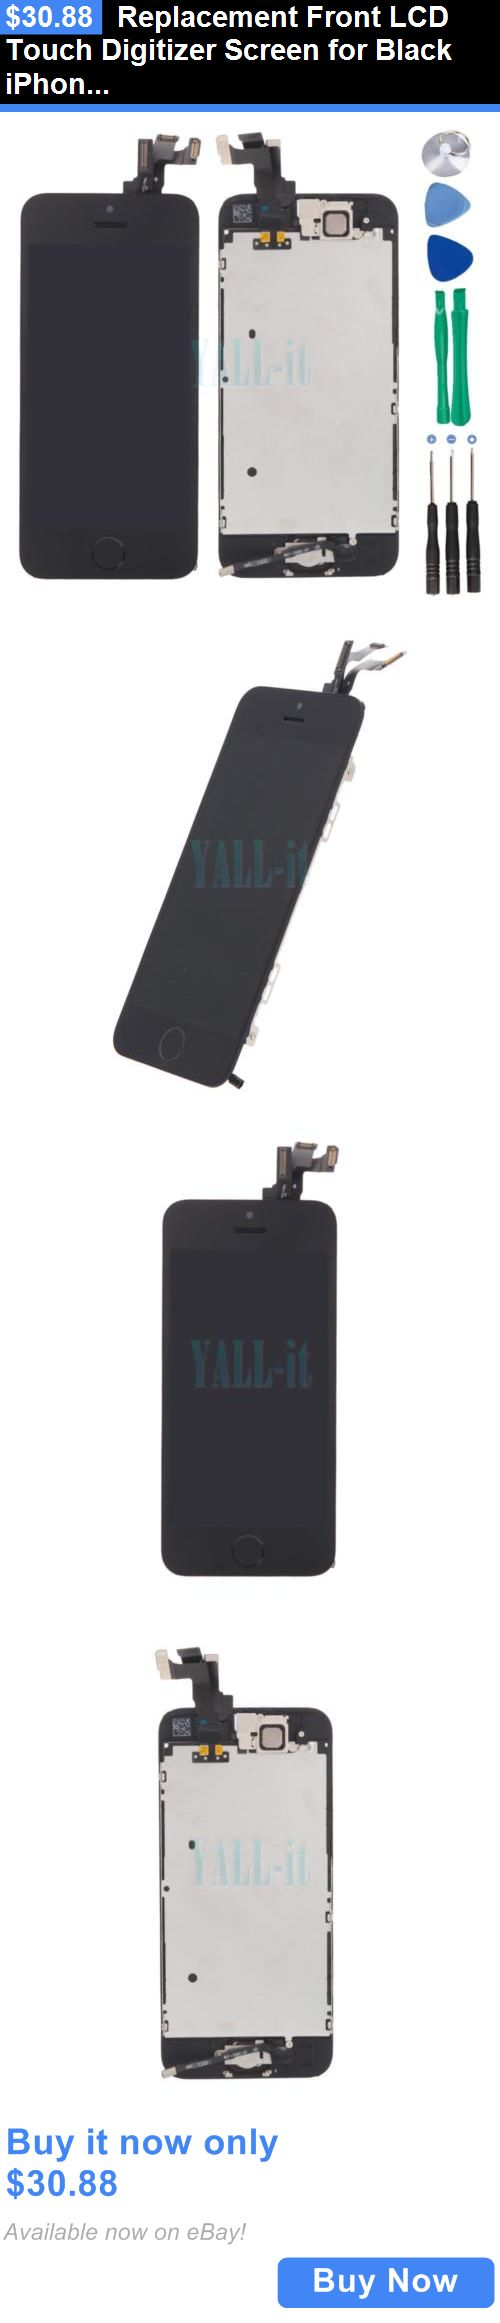 general for sale: Replacement Front Lcd Touch Digitizer Screen For Black Iphone Se/5S W/Button BUY IT NOW ONLY: $30.88